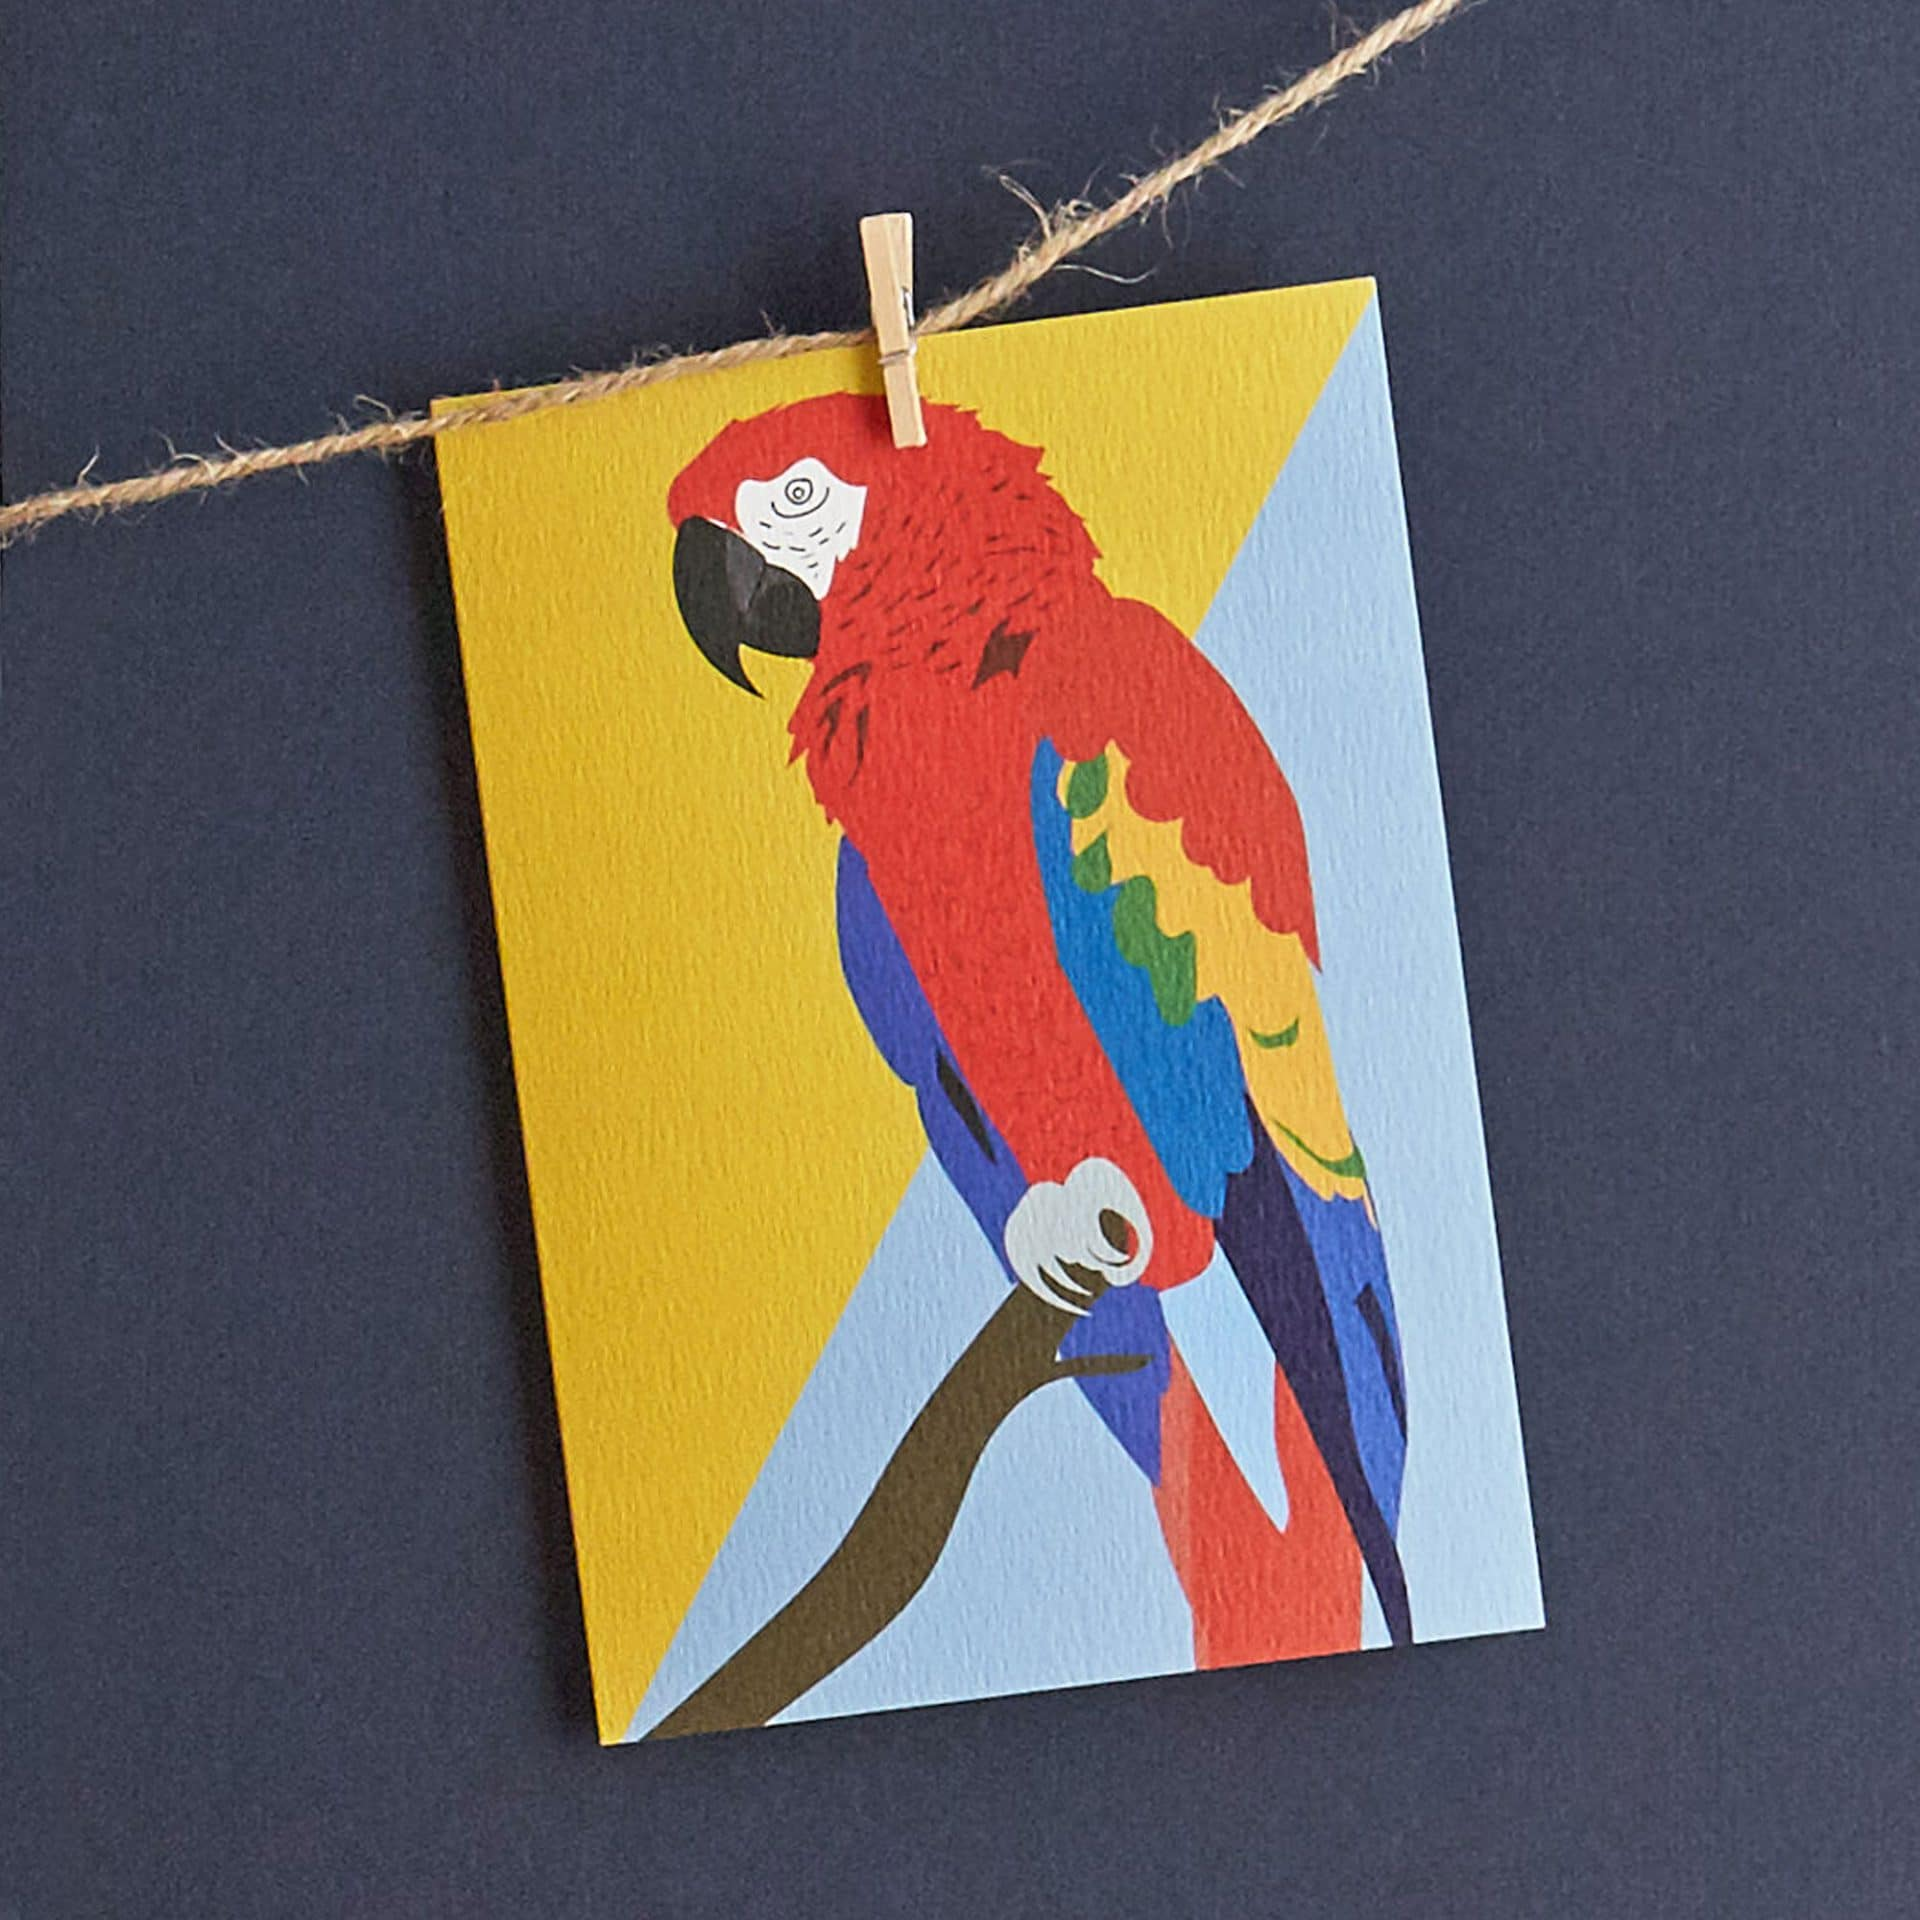 CoCo the macaw greetings card designed by Lorna Syson.